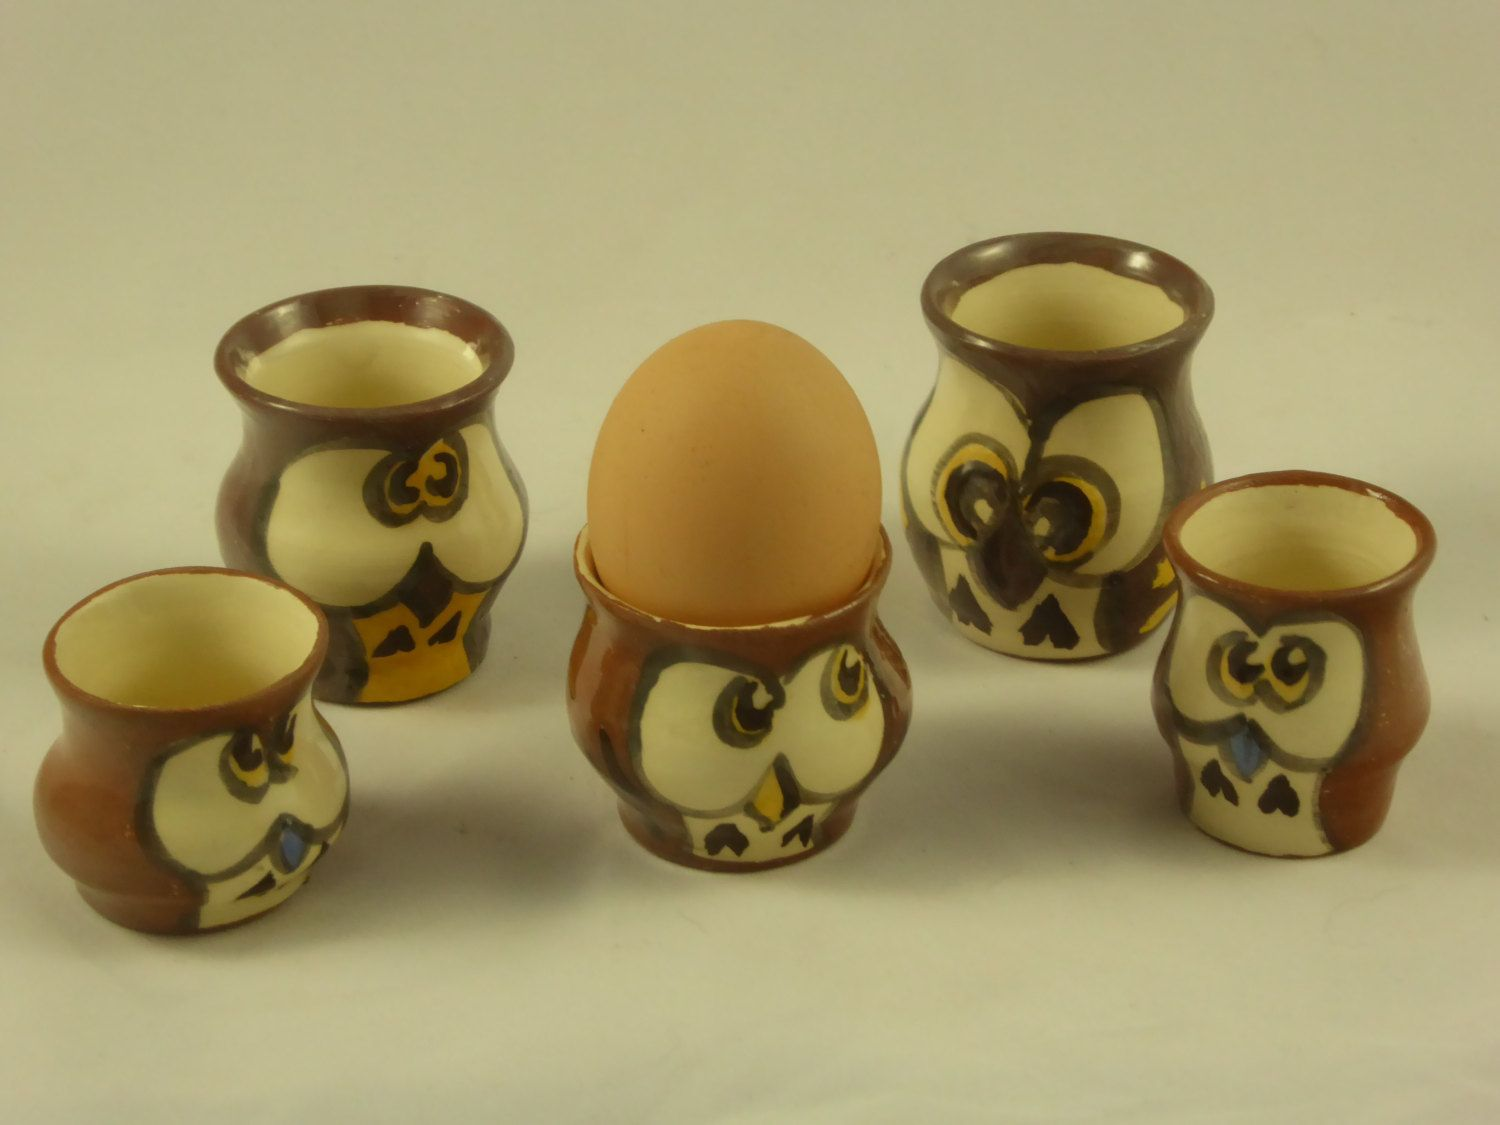 Five small owl-ornaments or eggcups by AlecPDavis on Etsy